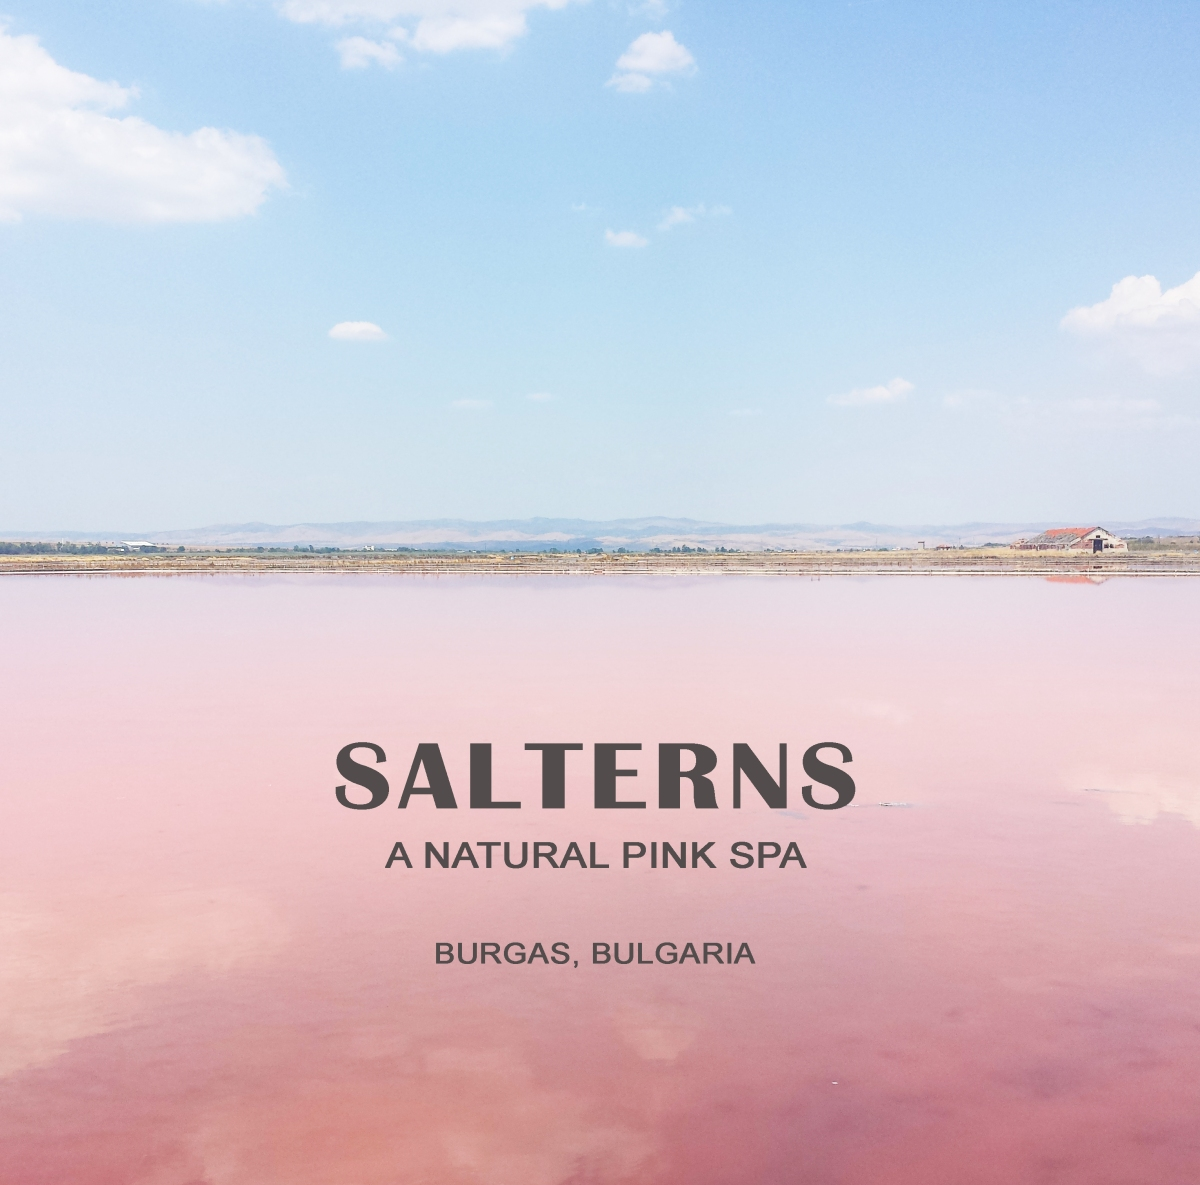 Burgas Salterns - A Natural Pink Spa in Bulgaria